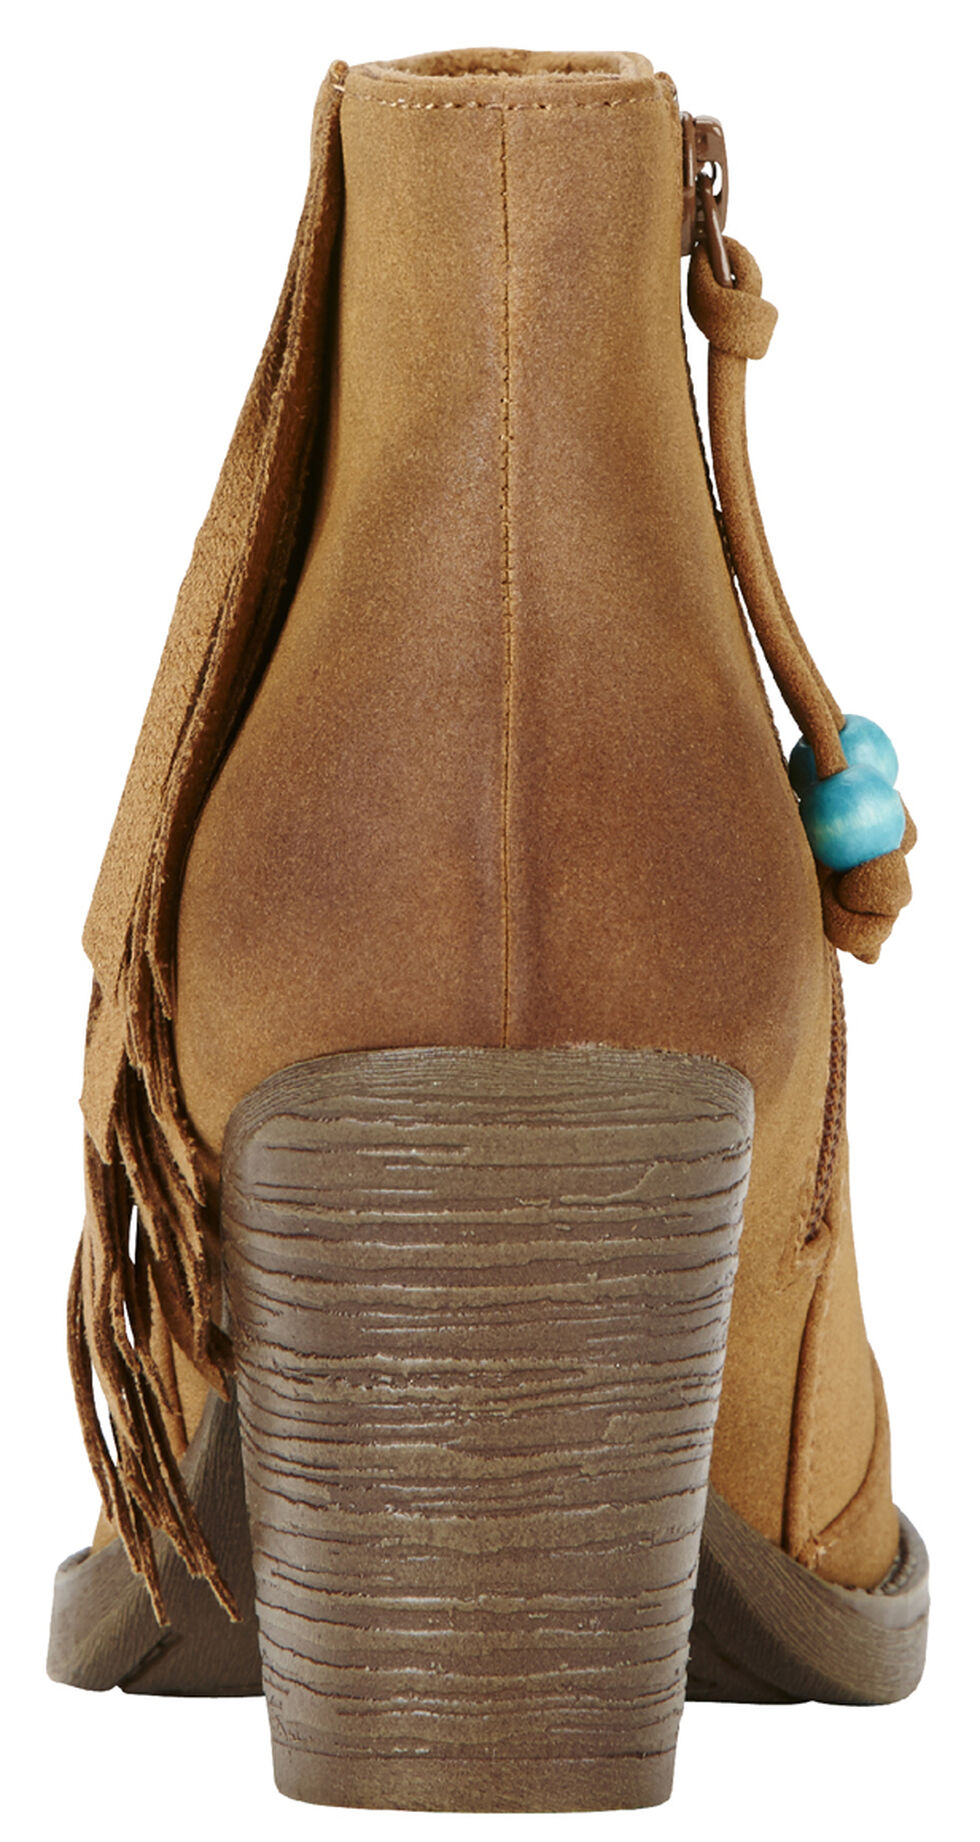 Ariat Women's Tan Unbridled Shayla Booties, Tan, hi-res